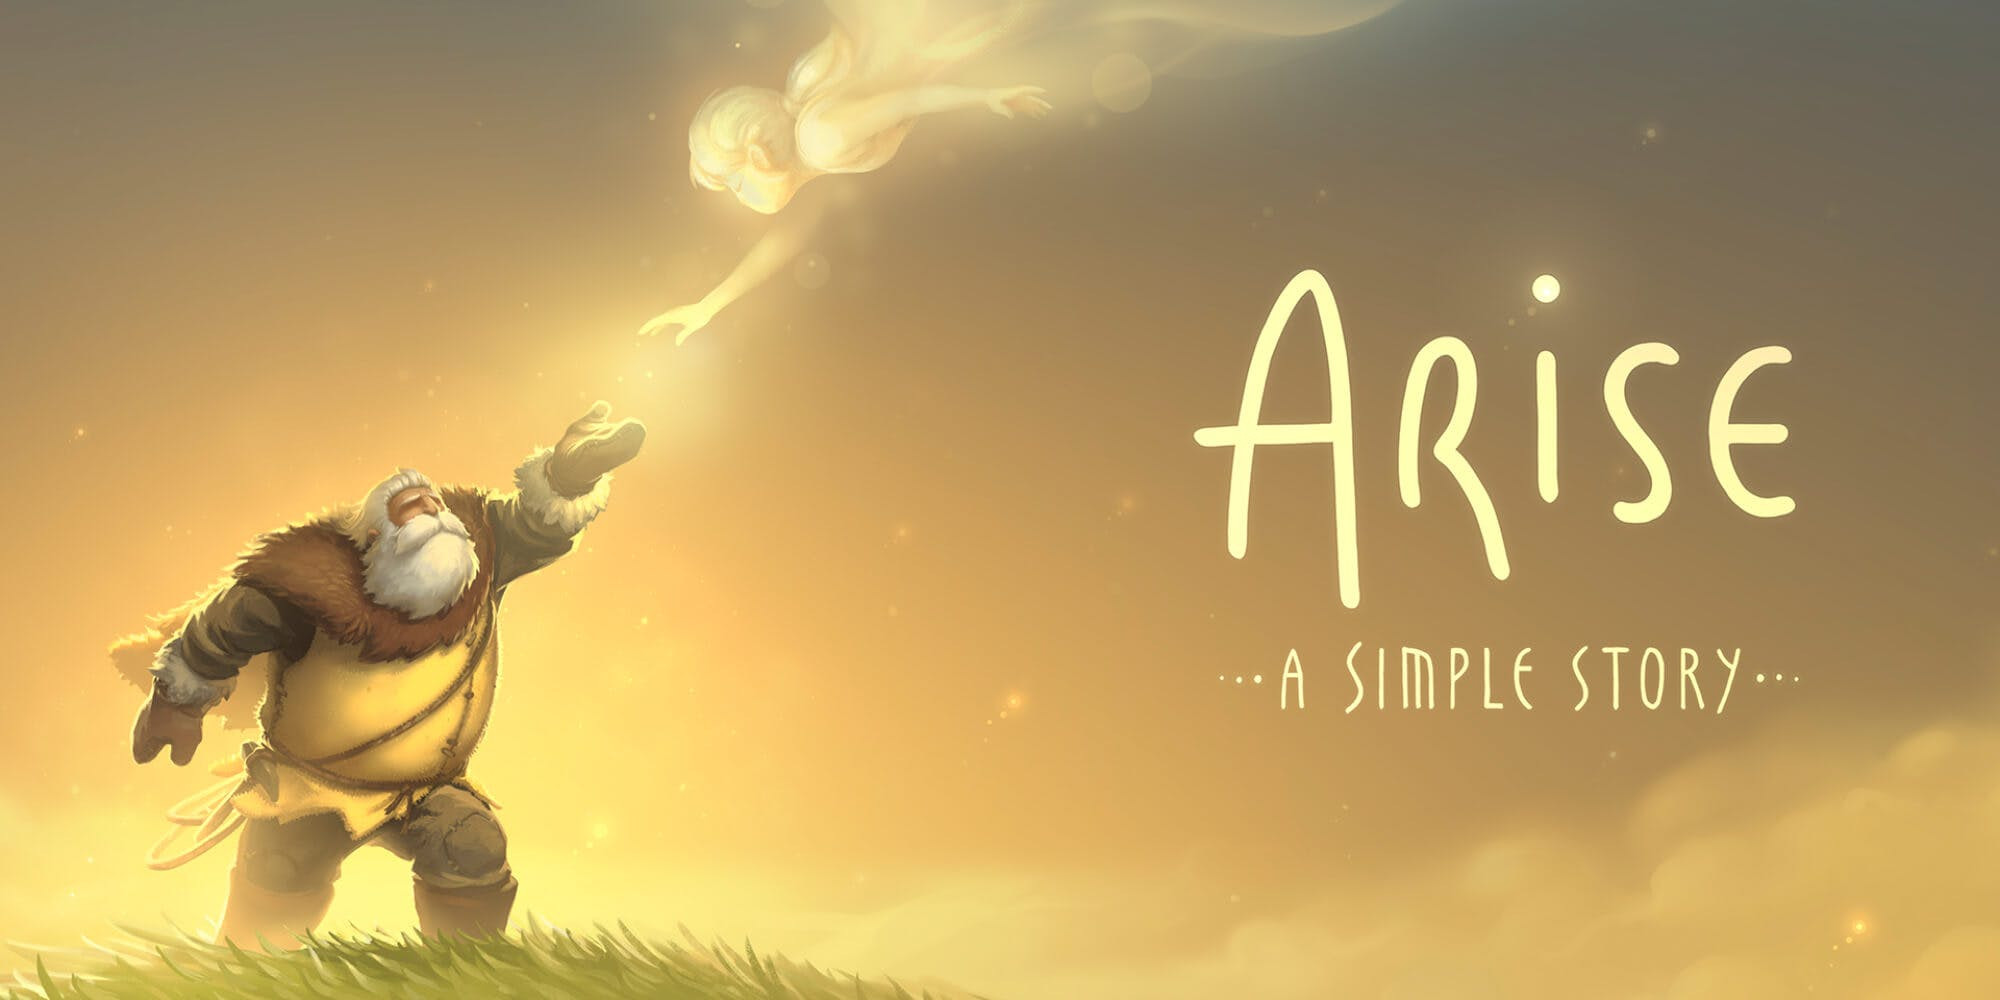 upcoming video games december 2019 arise a simple story release date